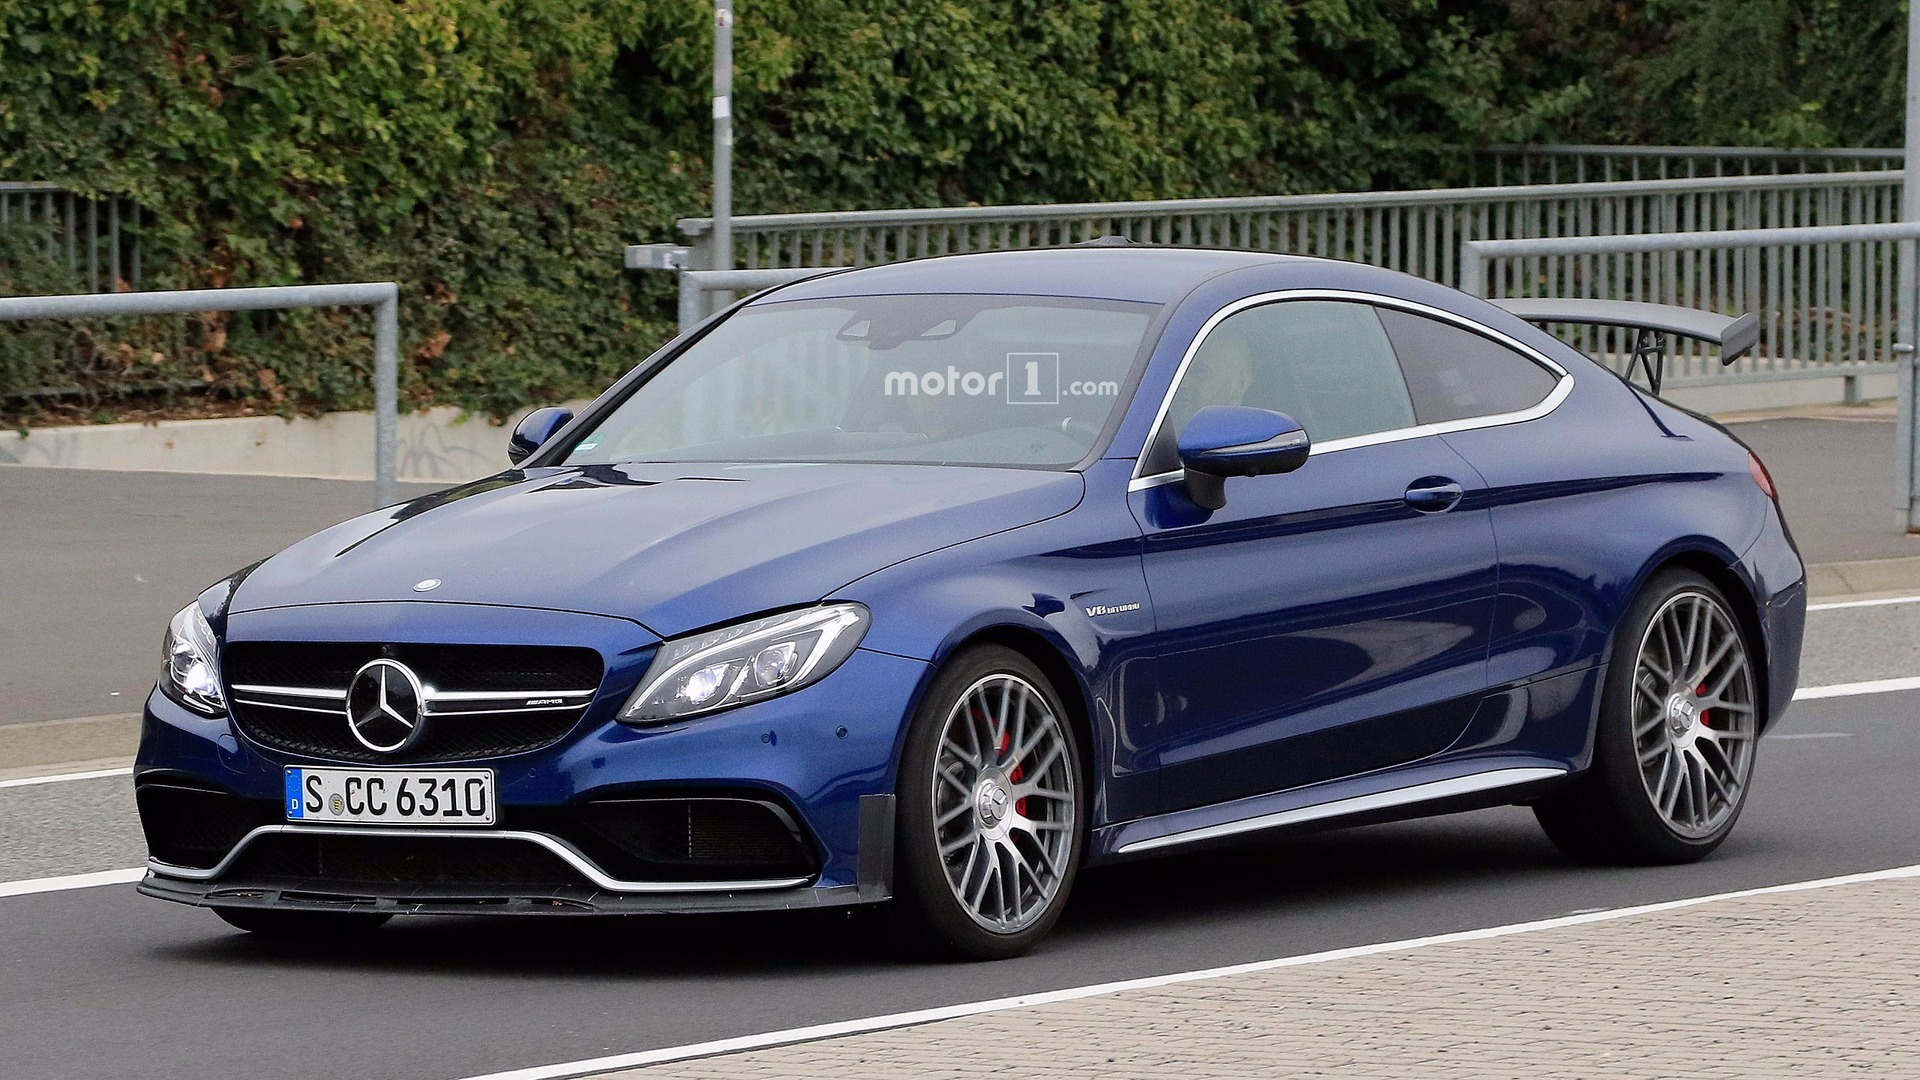 Mercedes amg c 63 s coupe edition 1 2016 wallpapers and hd images - Mercedes Amg C63 With All Wheel Drive Ruled Out This Generation Product 2017 04 23 07 57 07